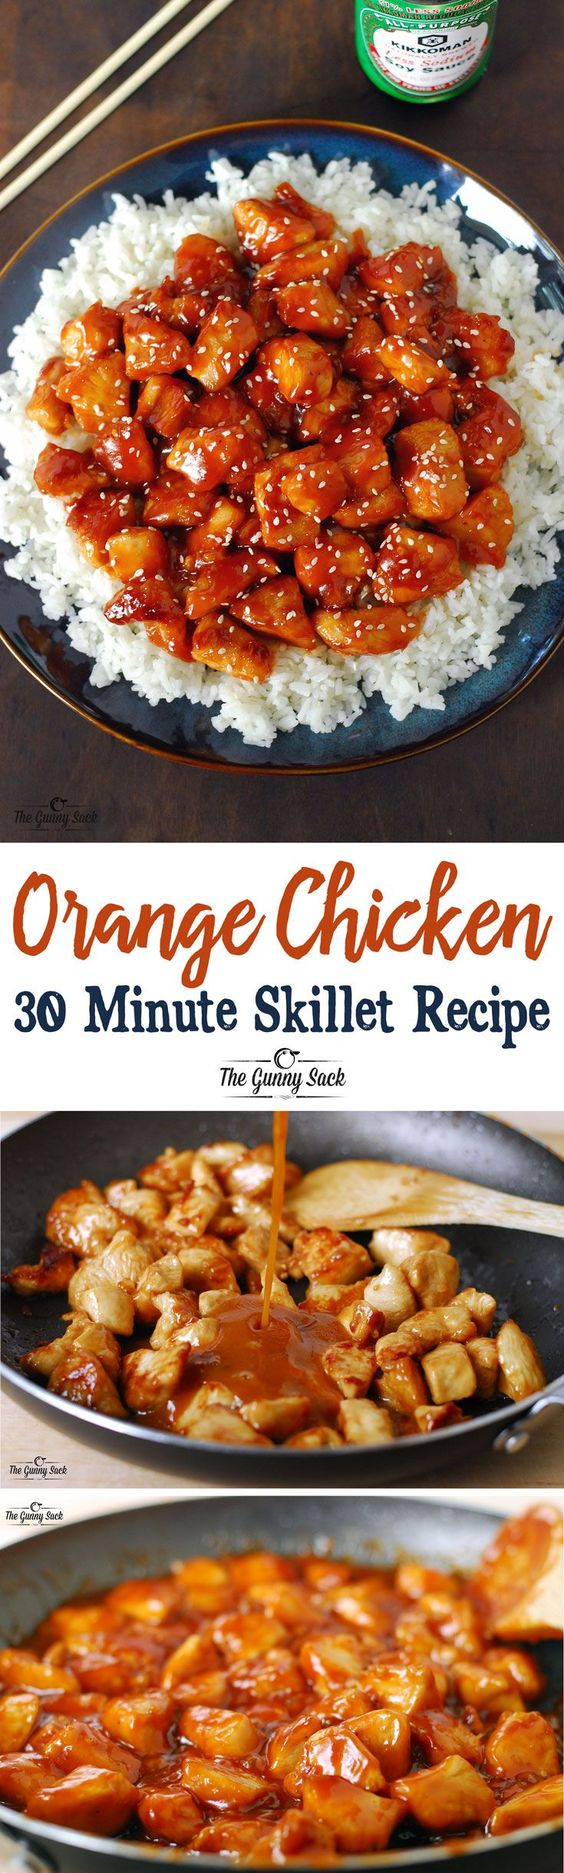 The best 30 minute meals recipes easy quick and delicious family orange chicken 30 minute skillet recipe via the gunny sack an easy dinner idea that forumfinder Image collections